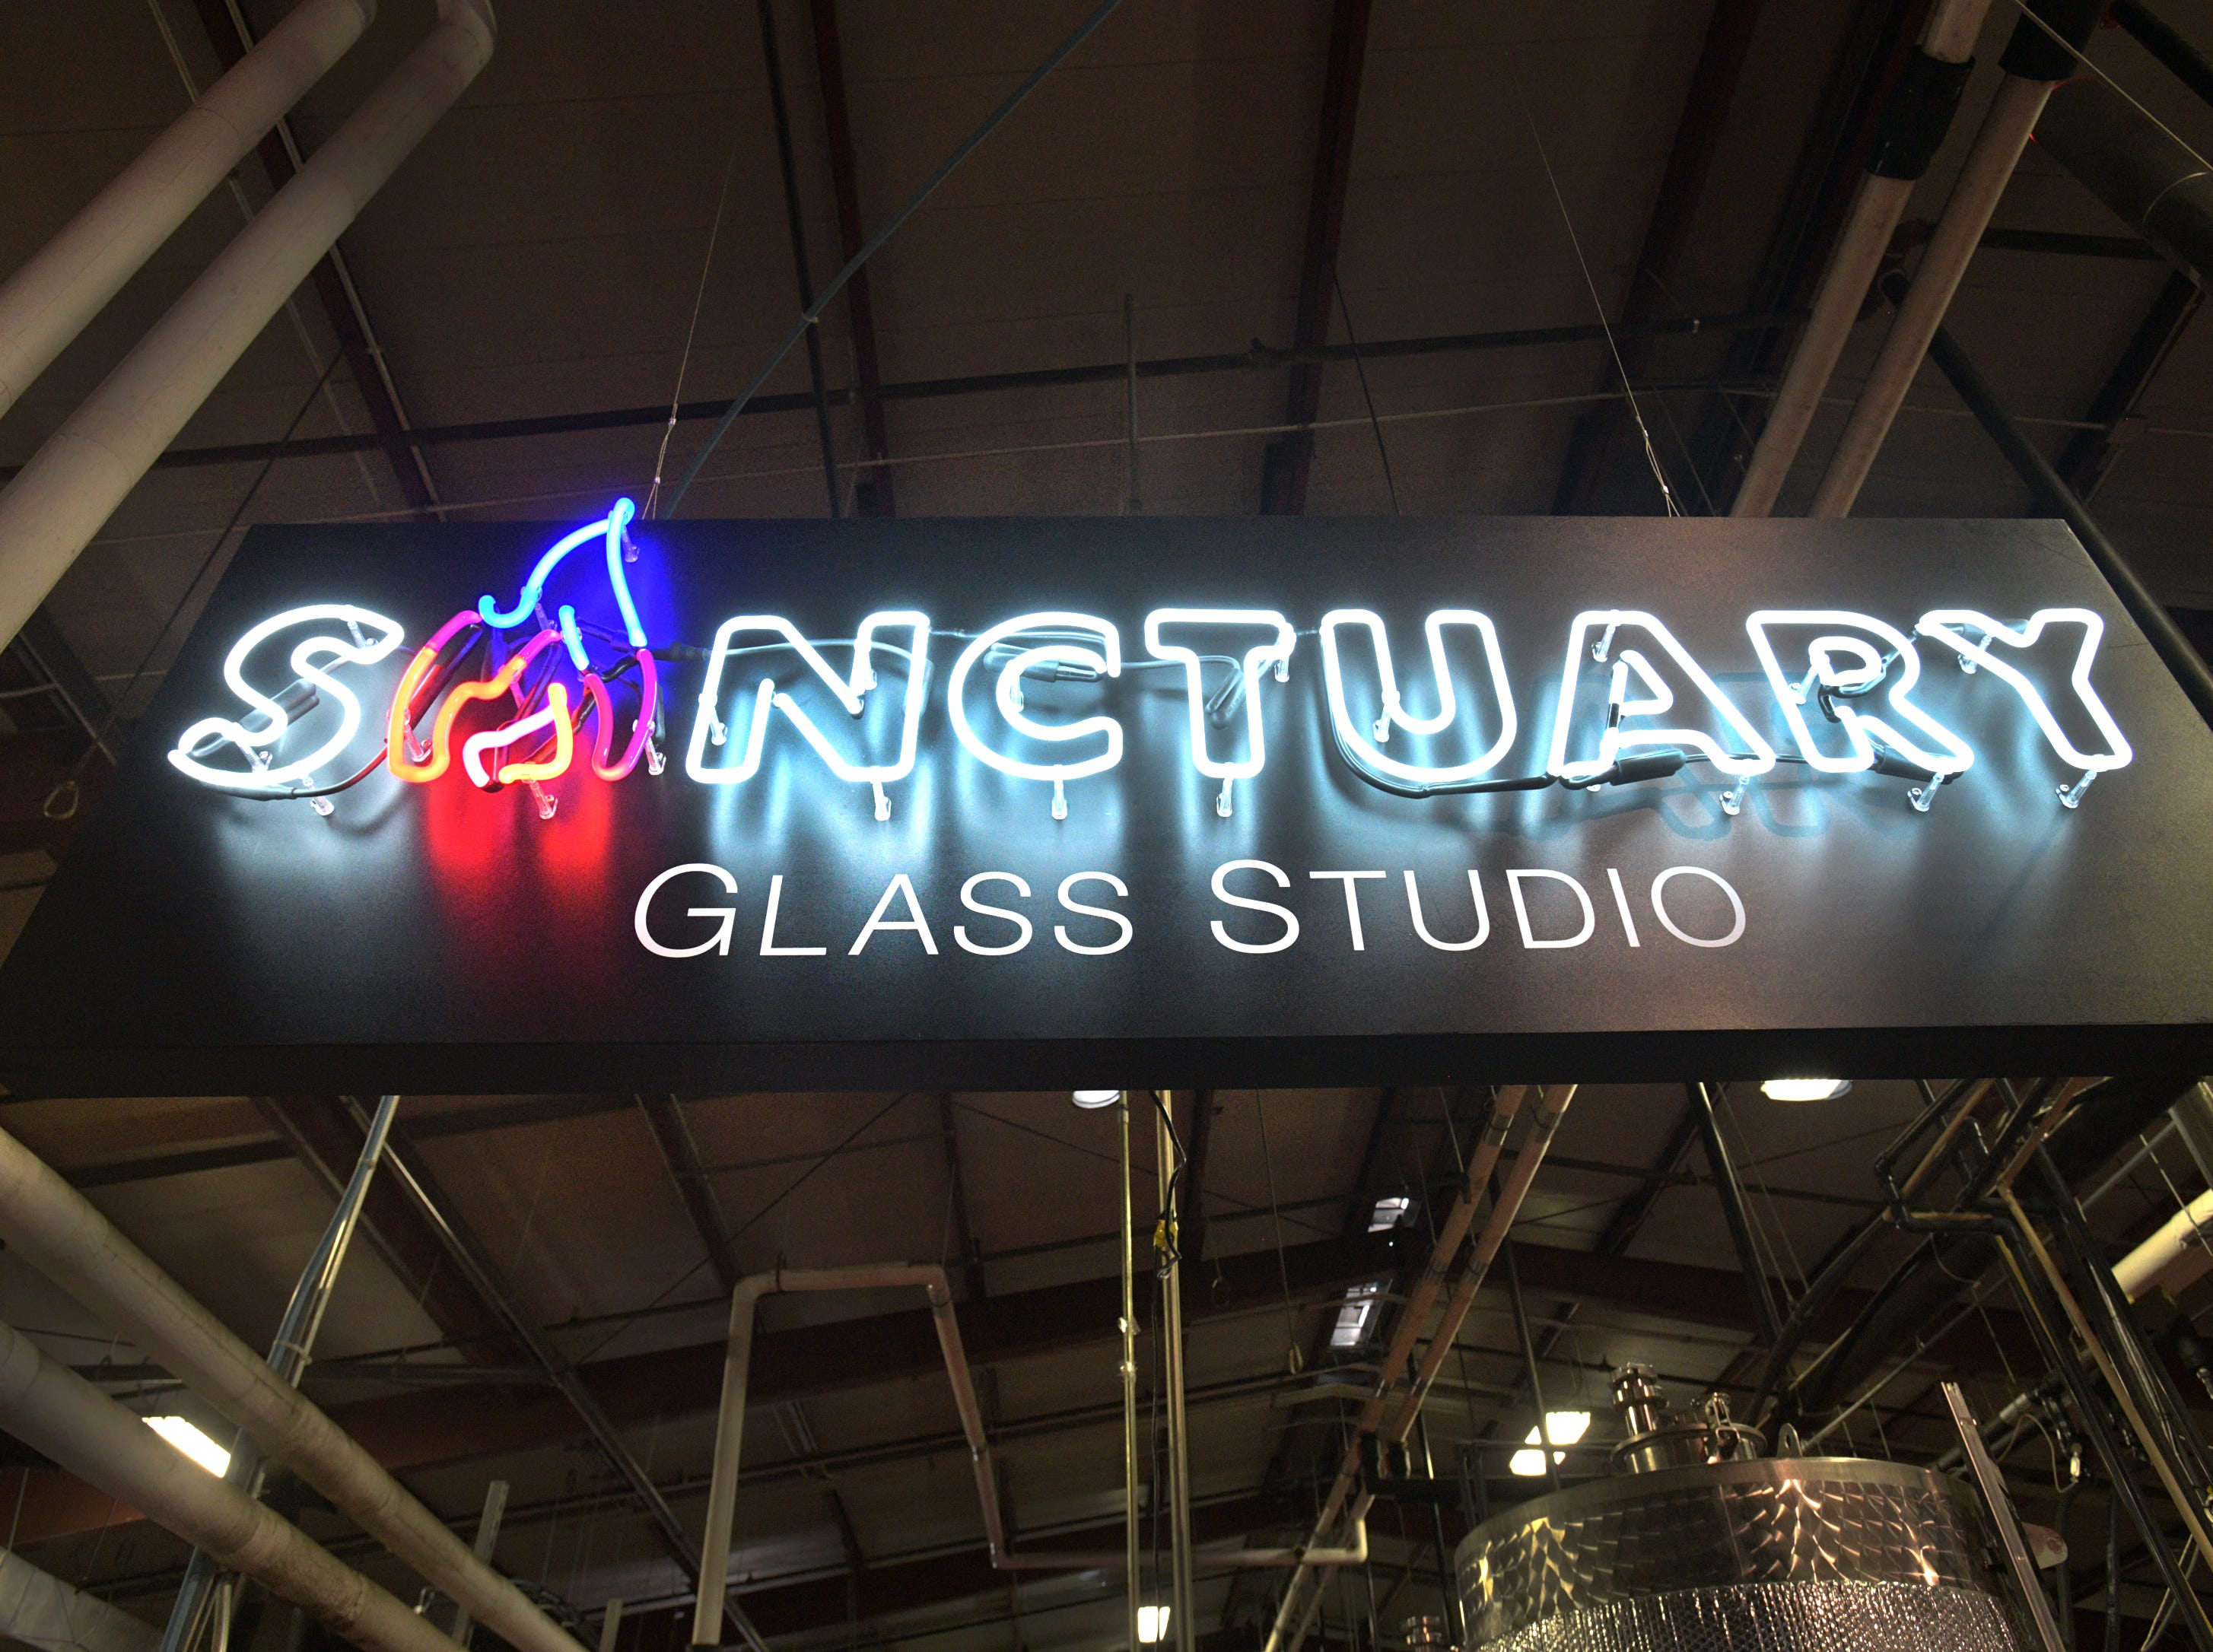 Michelle Pennington and Eric Hess own and run Sanctuary Glass Studio located in Shreveport's Red River Brewing Company.